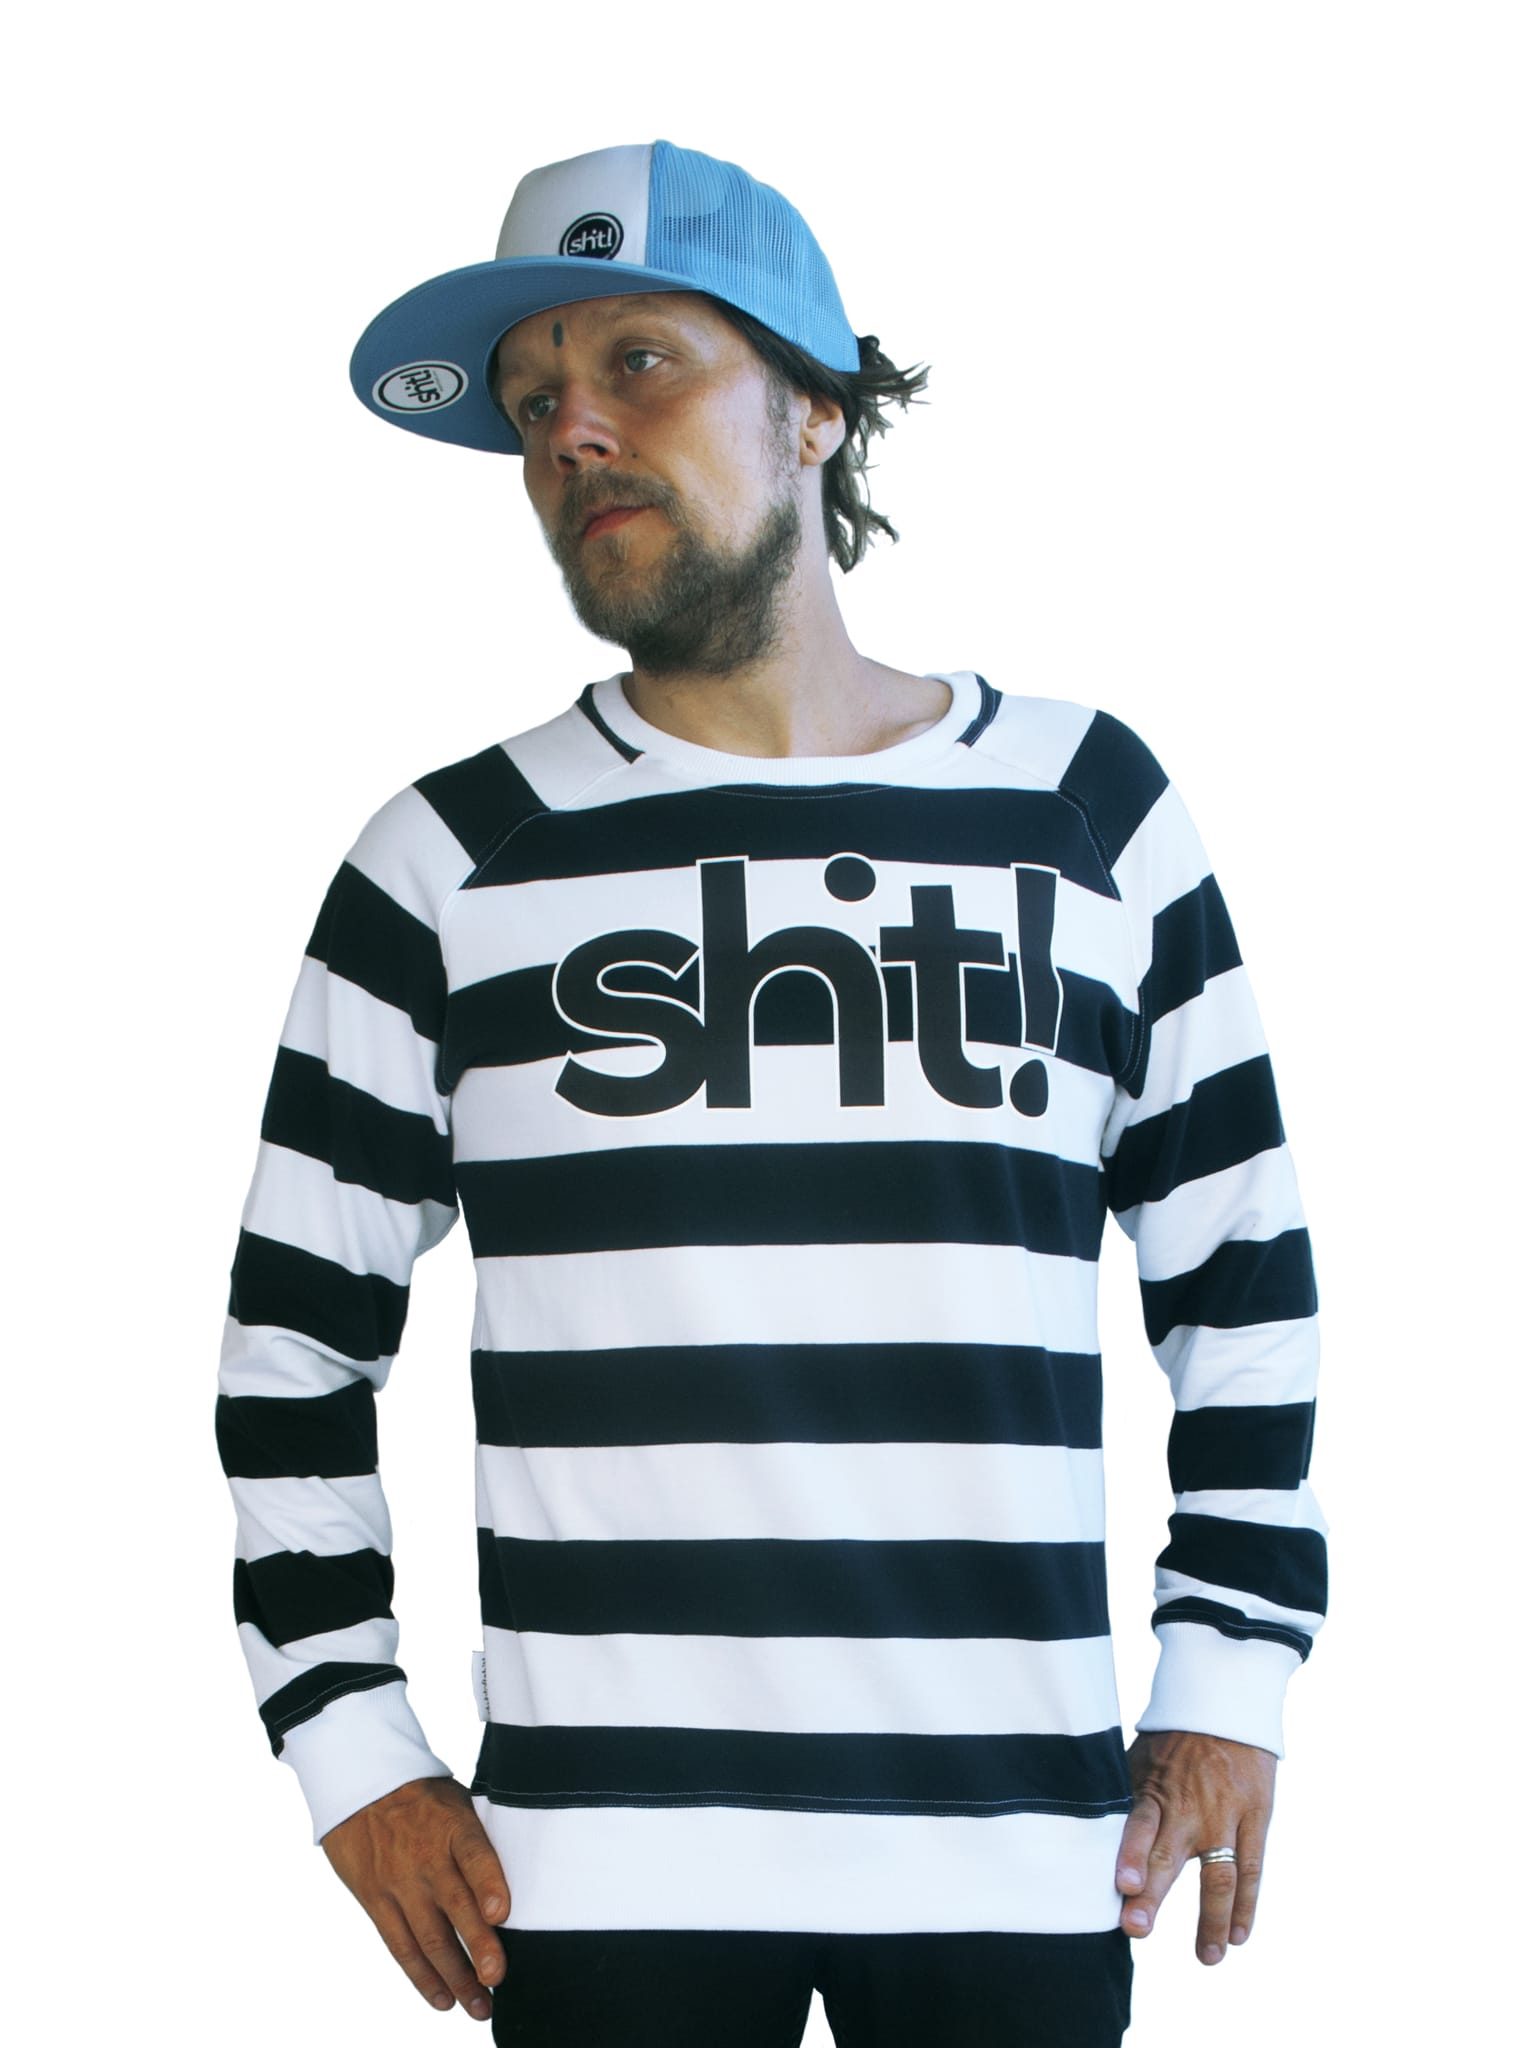 Black and white striped Sweatshirt - in 4 life collection